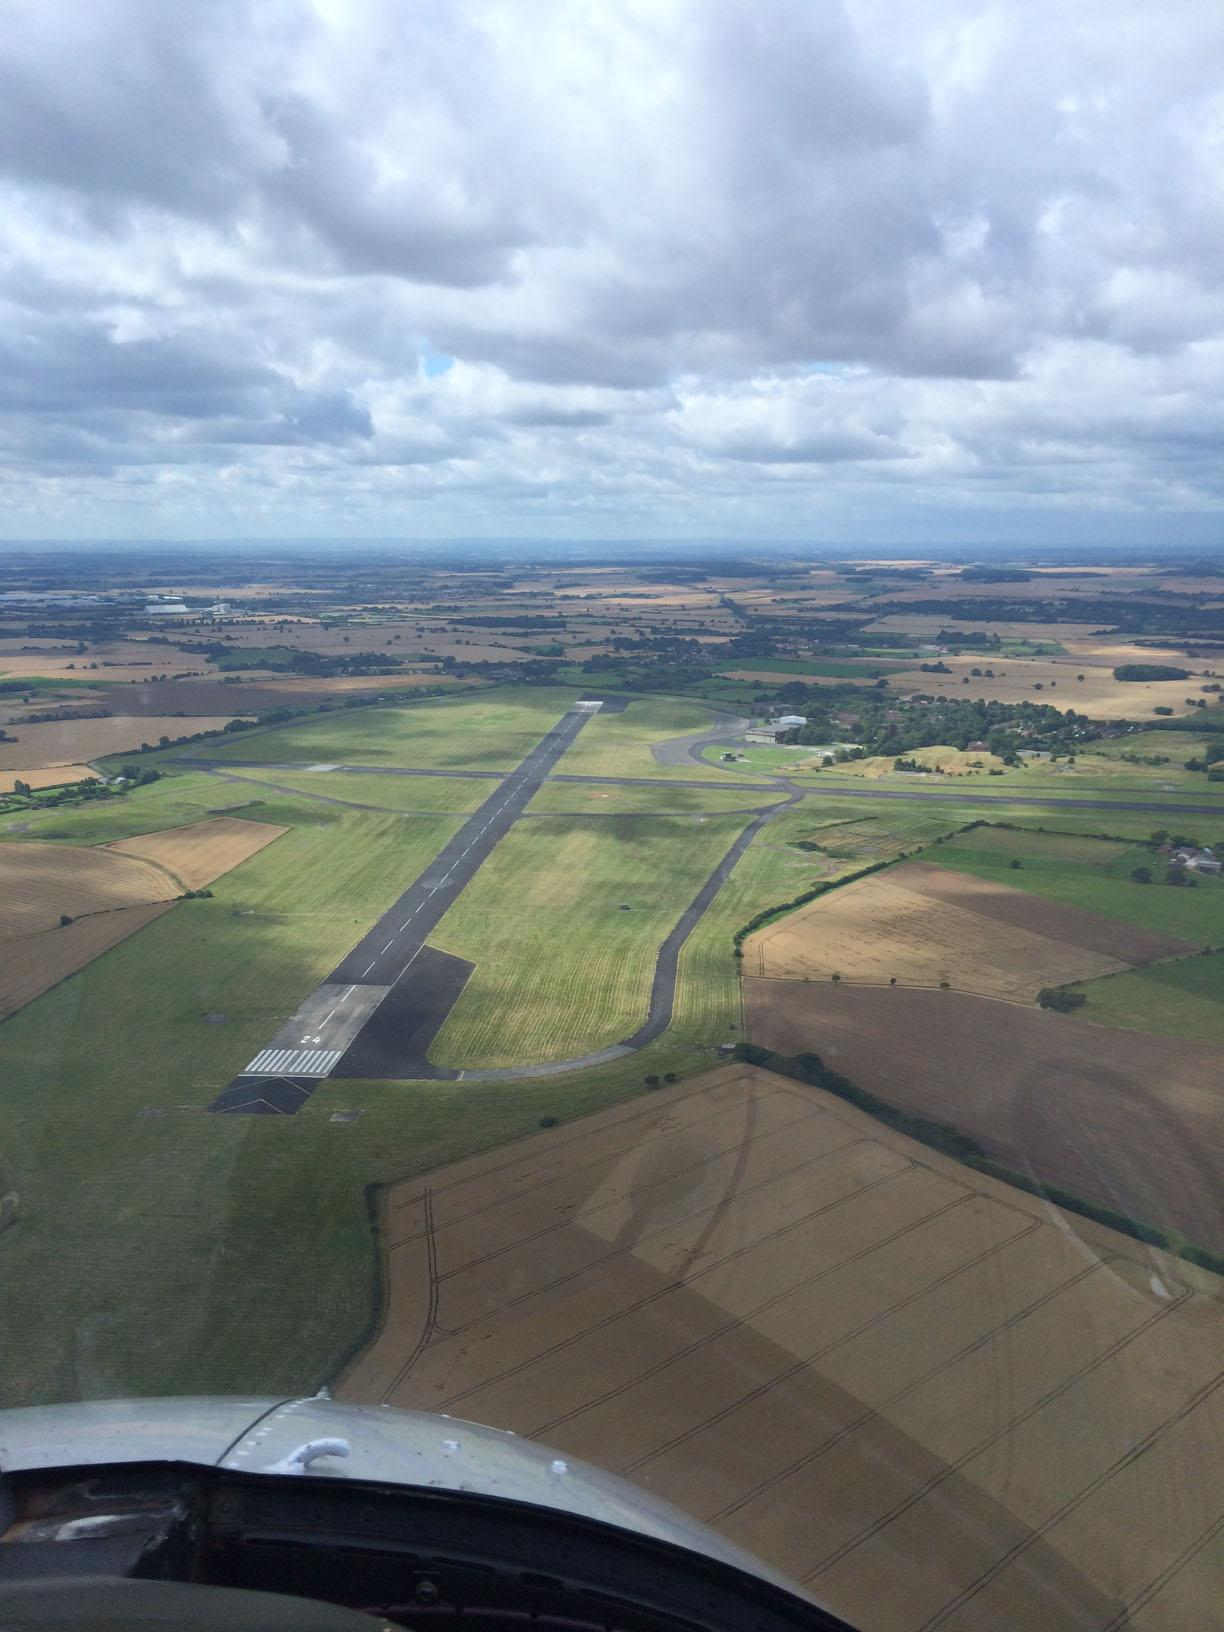 New owner of RAF Church Fenton plans commercial flying - and